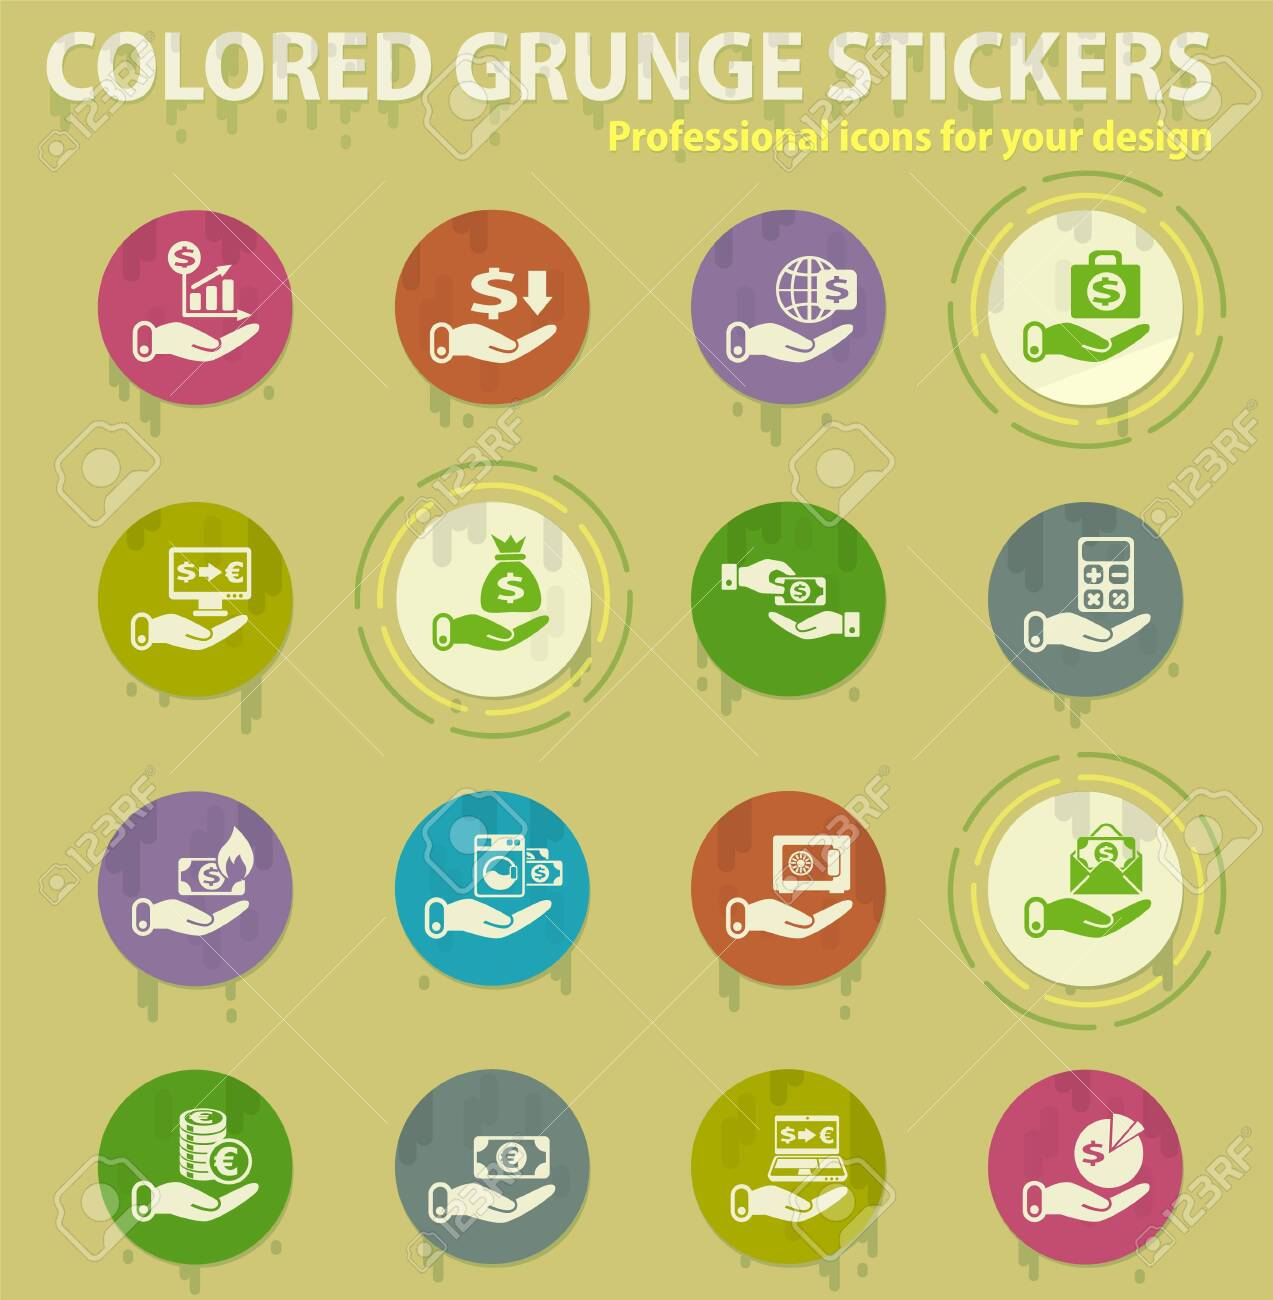 hand and money colored grunge icons with sweats glue for design web and mobile applications - 150816601